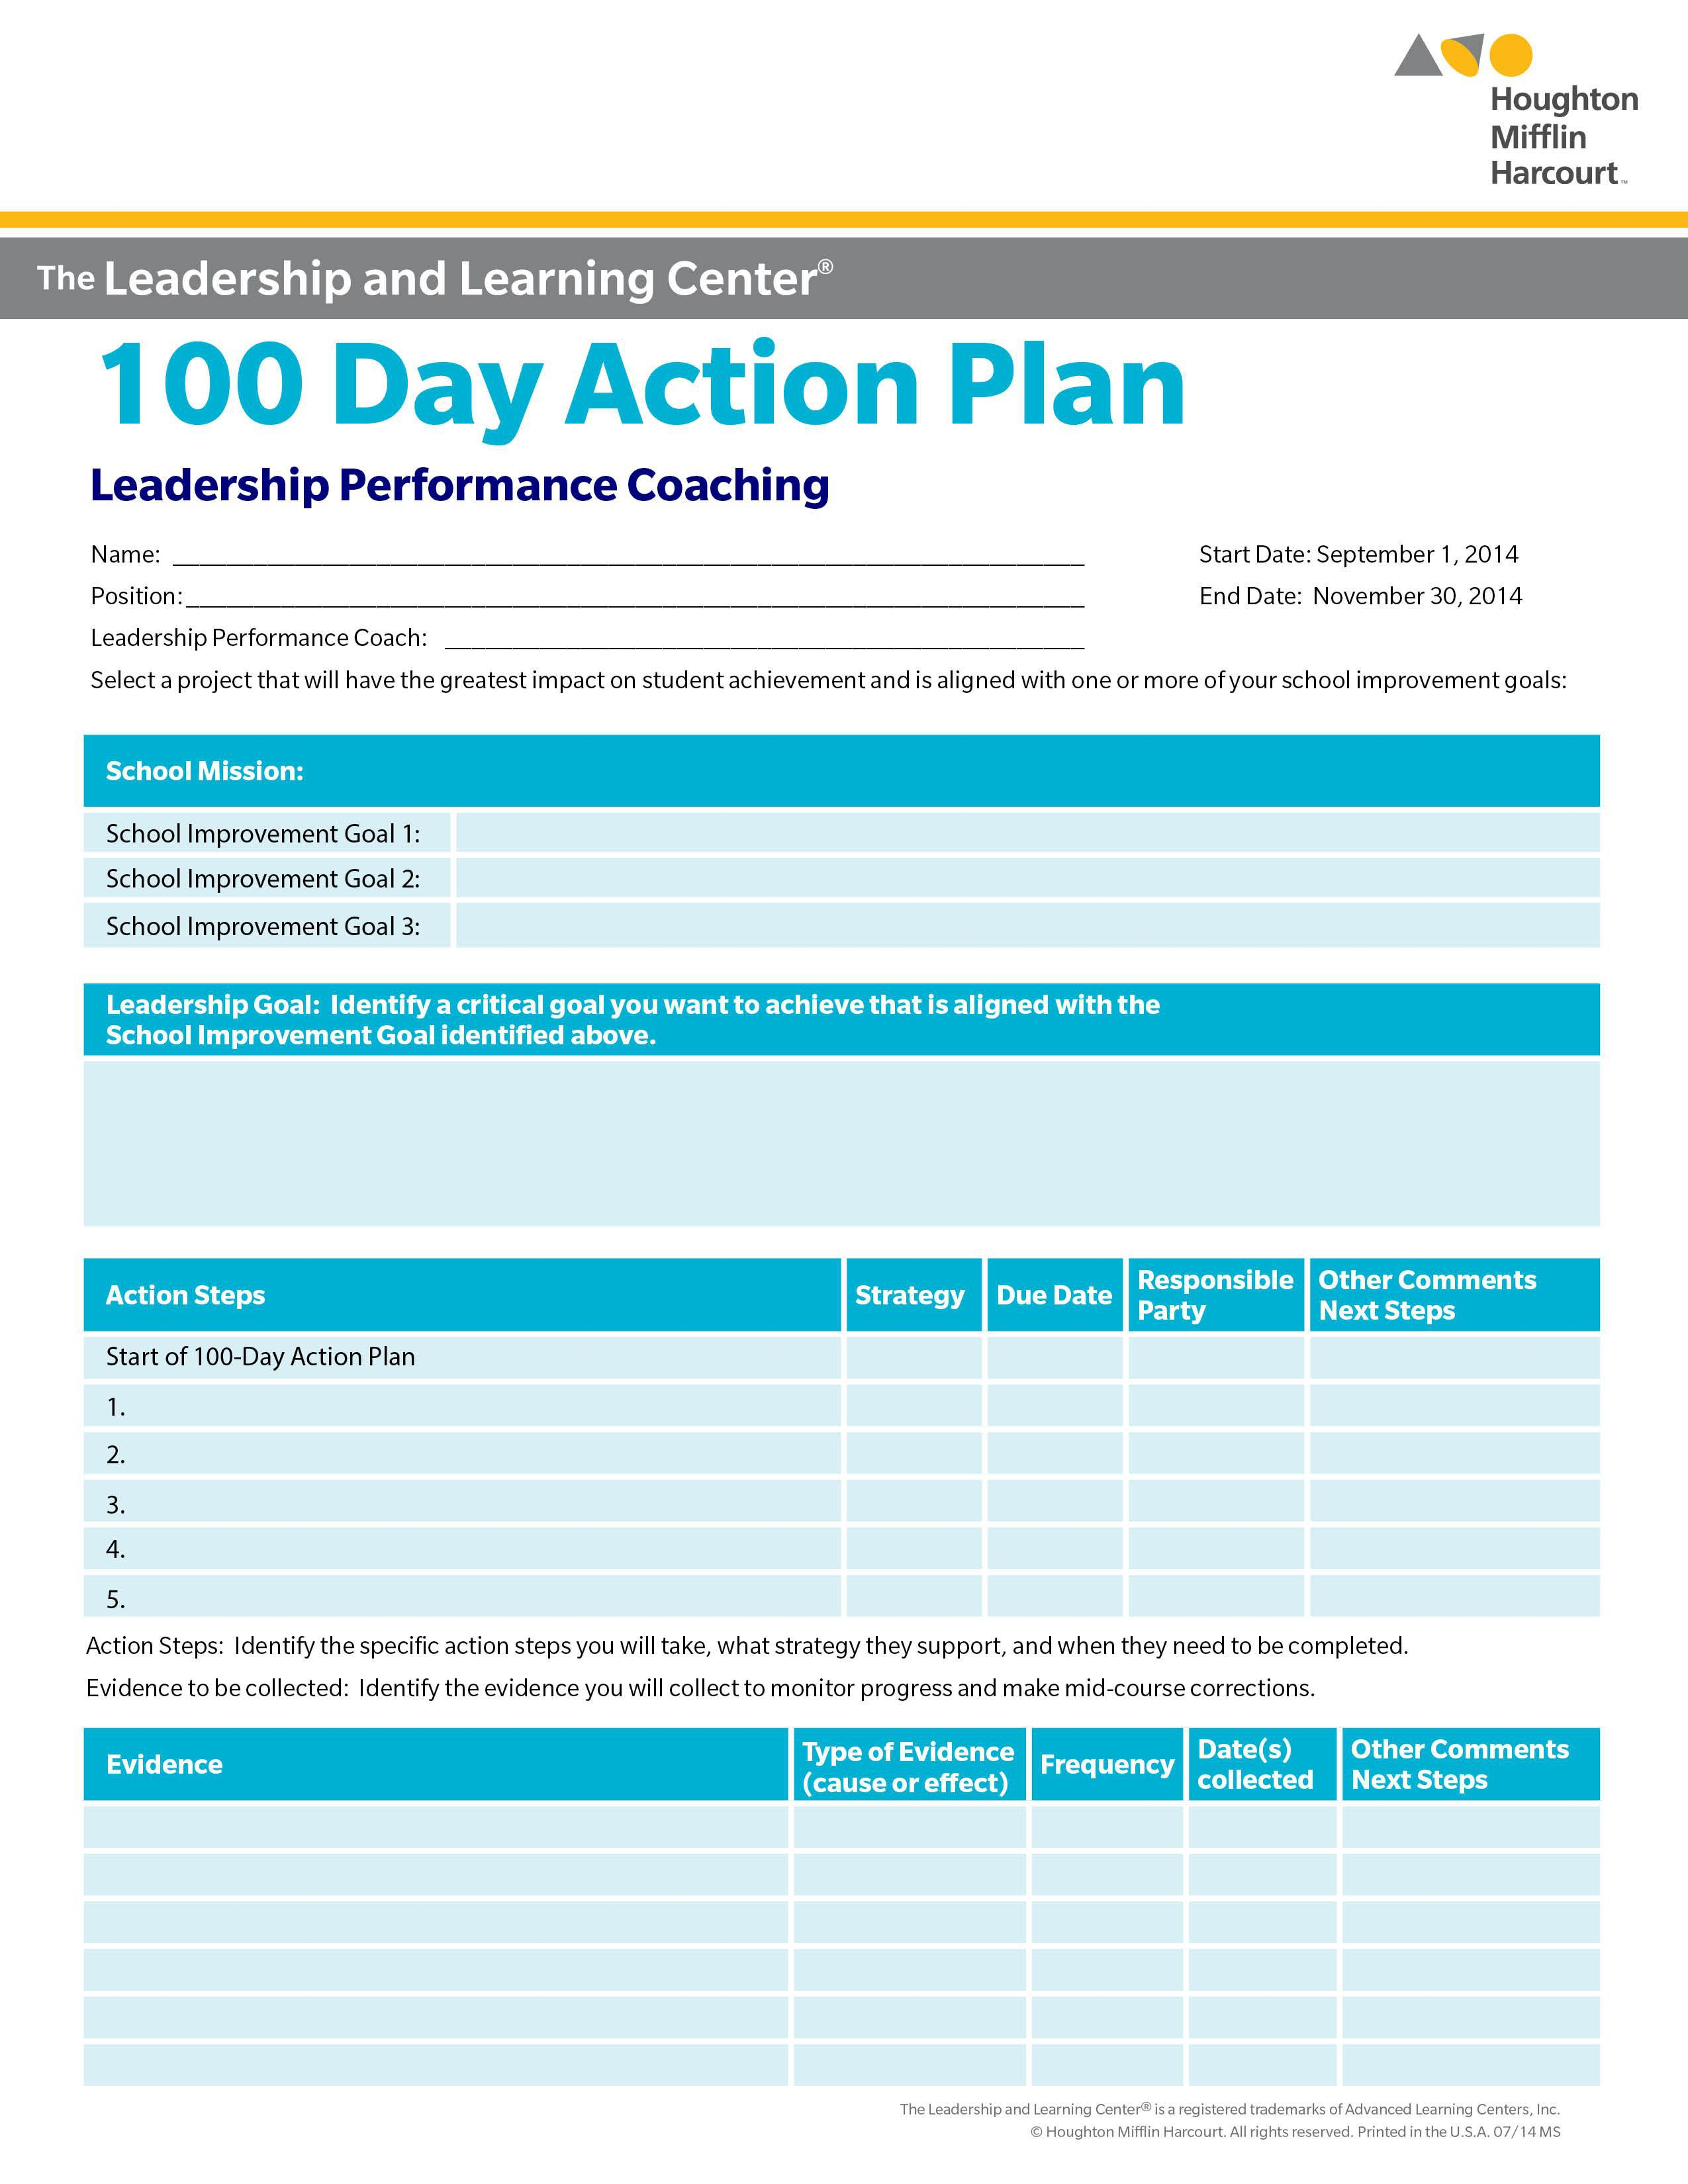 002 Stunning School Improvement Planning Template Example  Templates Plan Sample Deped 2016 South AfricaFull